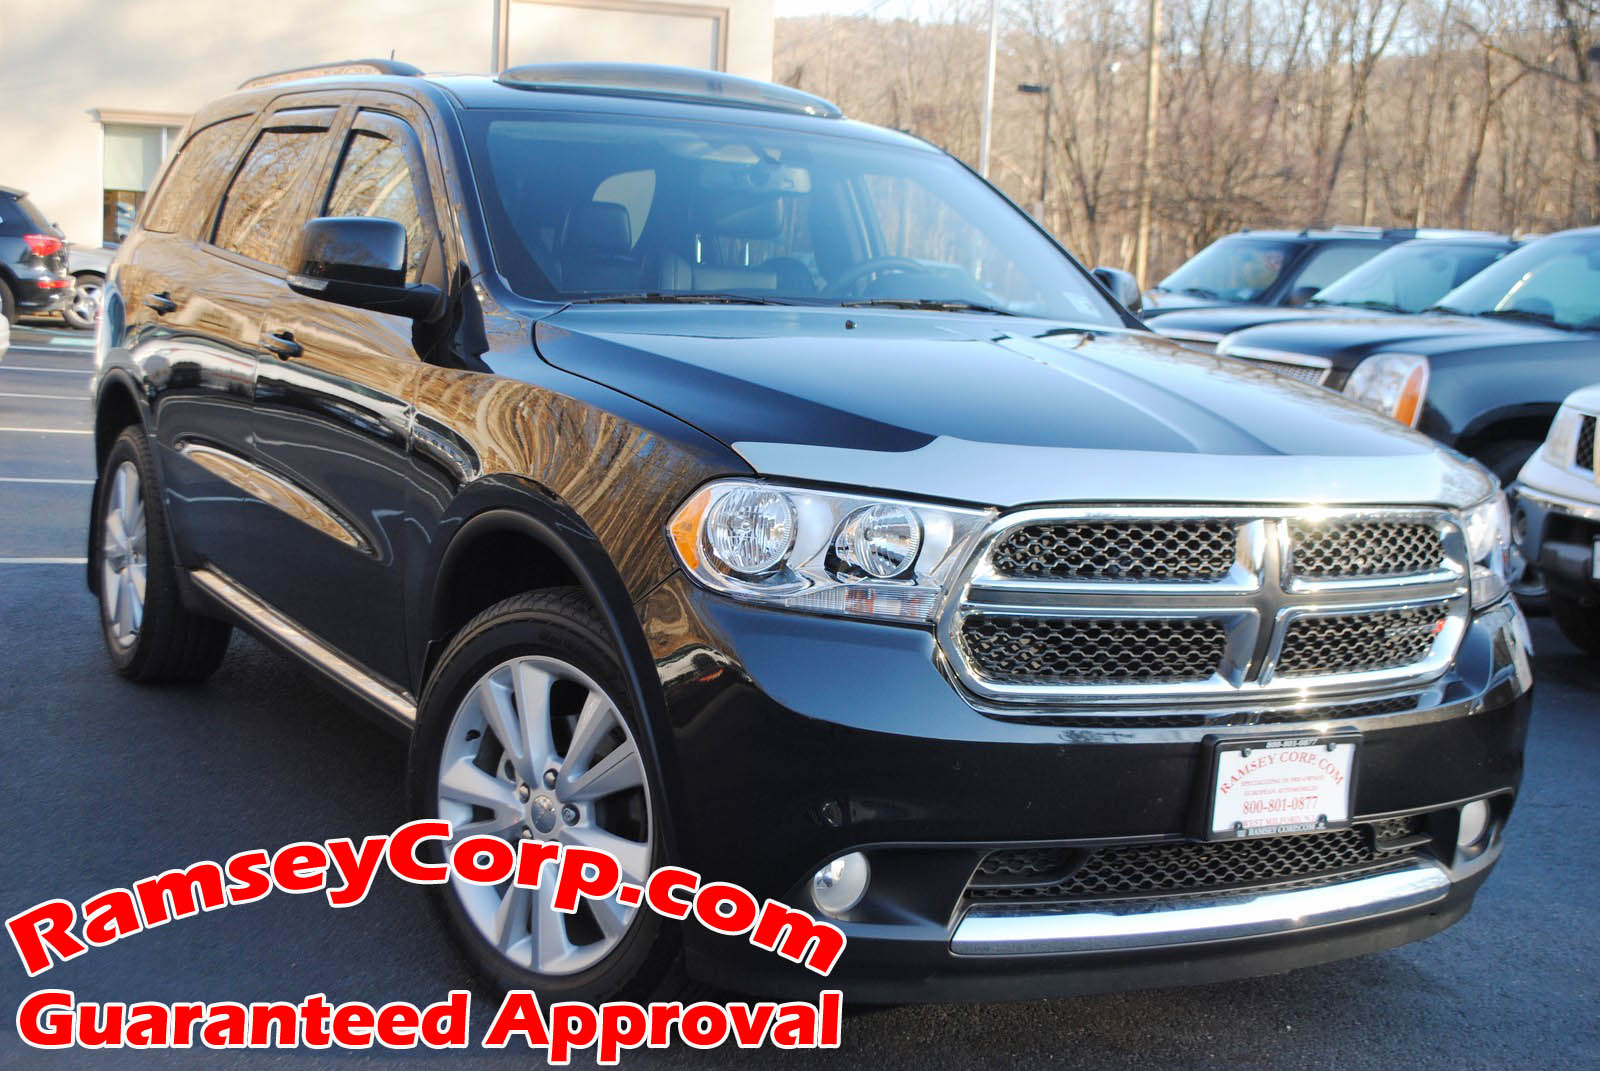 used 2012 dodge durango for sale west milford nj. Black Bedroom Furniture Sets. Home Design Ideas